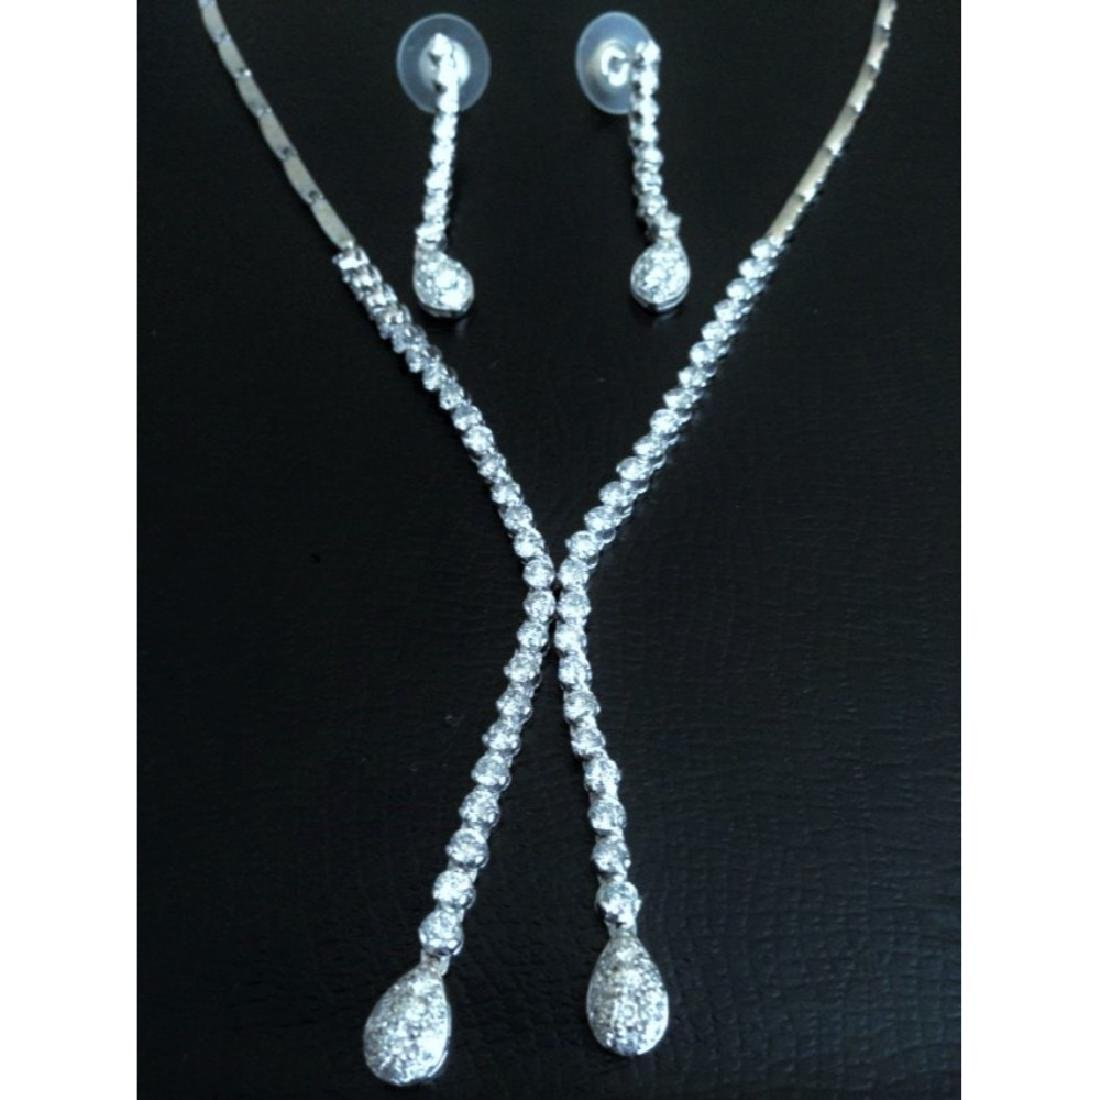 6.00 CARAT Diamond Necklace And Earrings SET $21,500 - 2